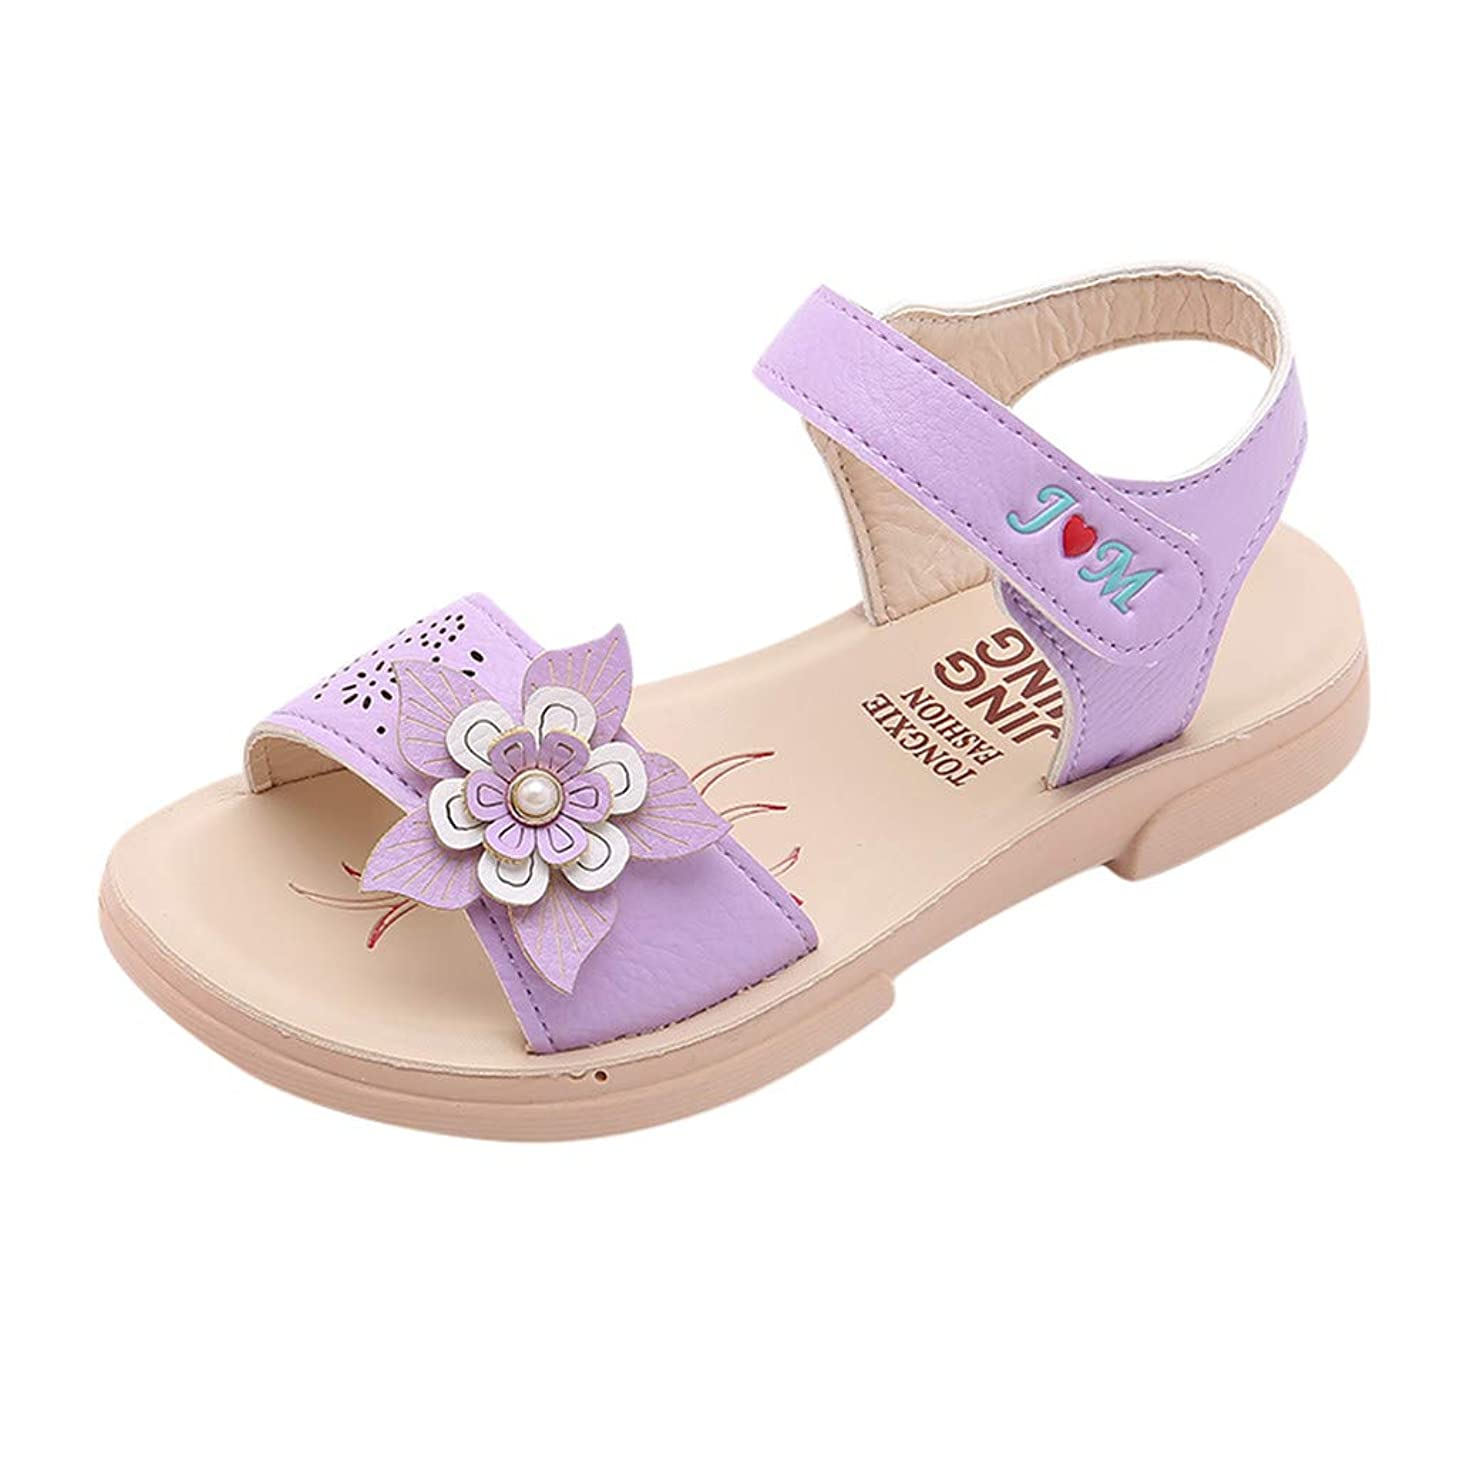 Leisuraly Girls' Dress Shoes Ballet Mary Jane Flat Glitter Shoes for Toddler Little Kids Princess Wedding Party